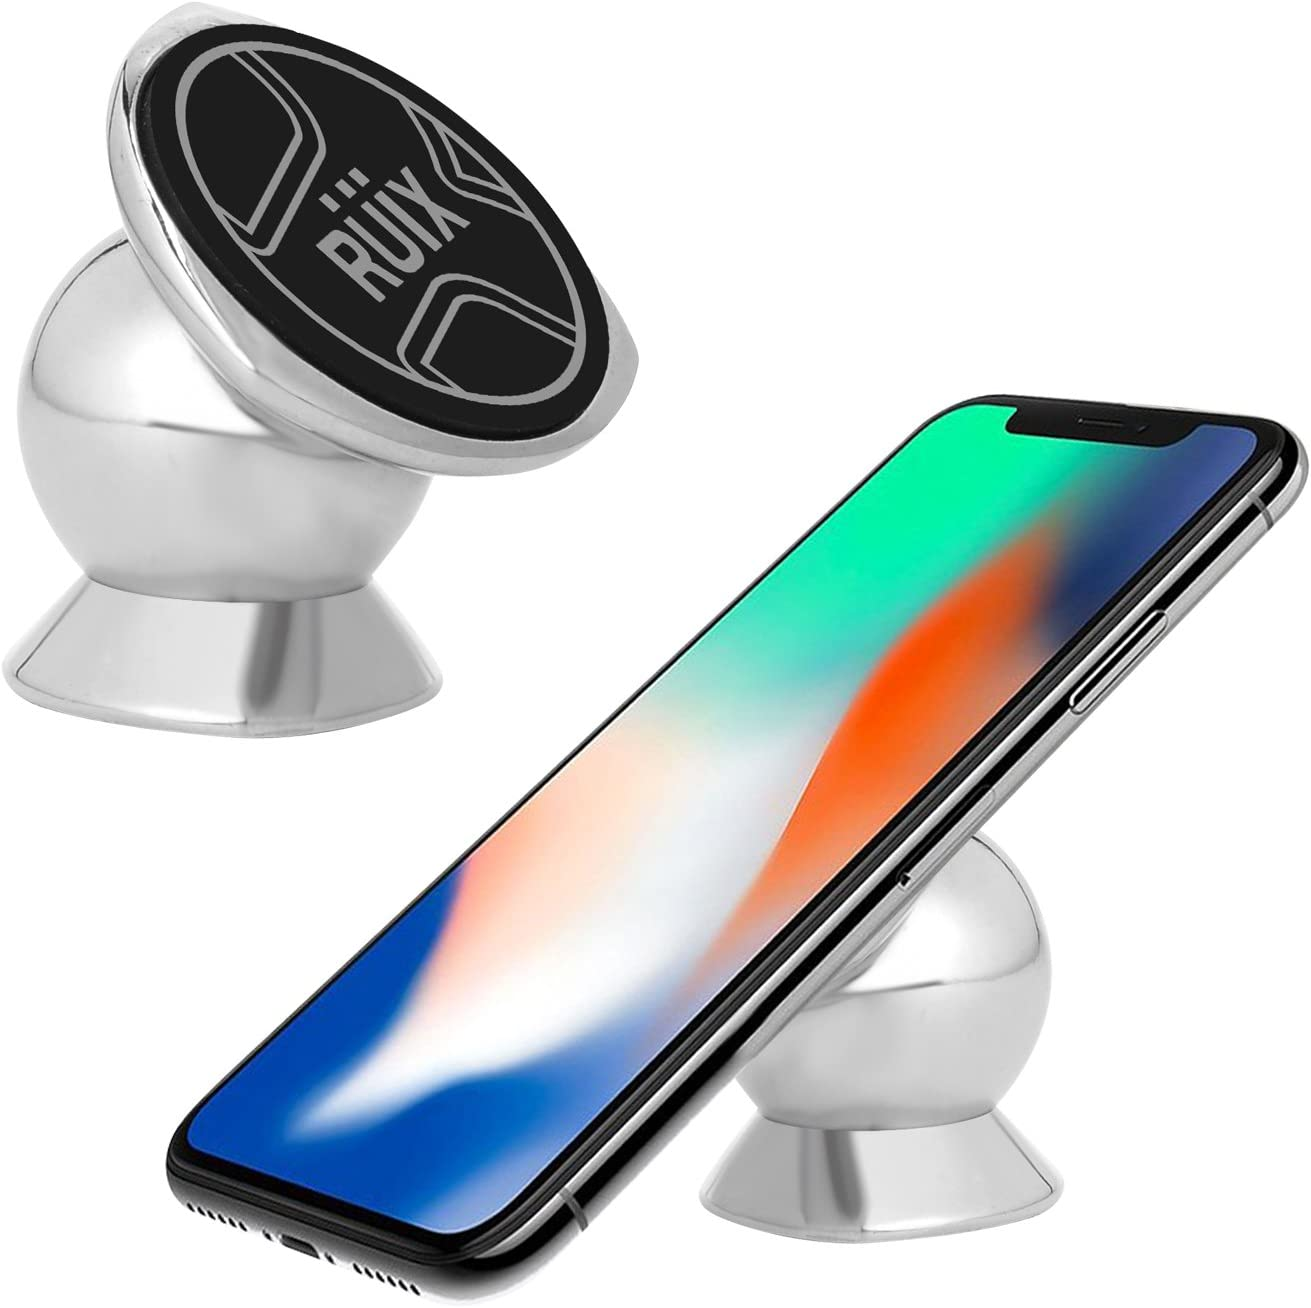 Samsung Metal Mobile Phone Holder for Car Dashboard Mount Compatible for iPhone Android Smartphones. Cellet Universal 360 Rotation Magnetic Car Phone Holder Stand